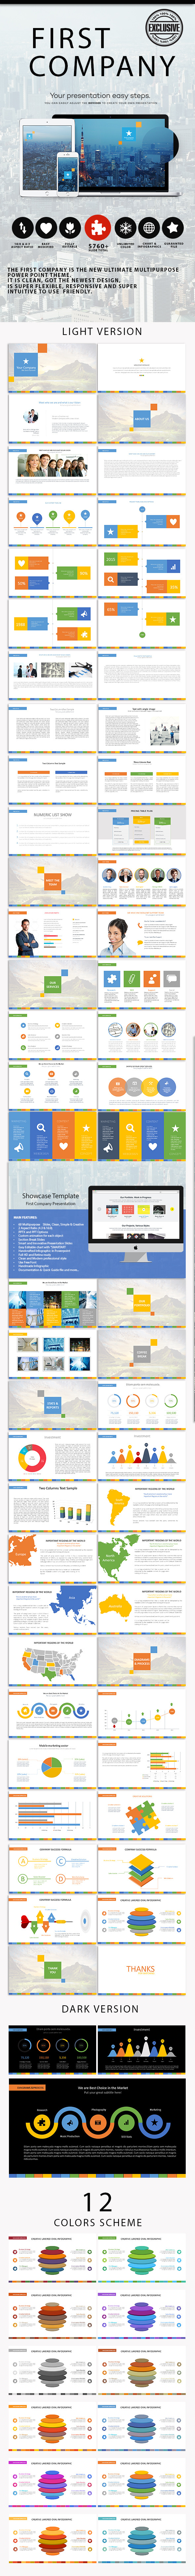 First Company - Multipurpose Presentation Template - Business PowerPoint Templates